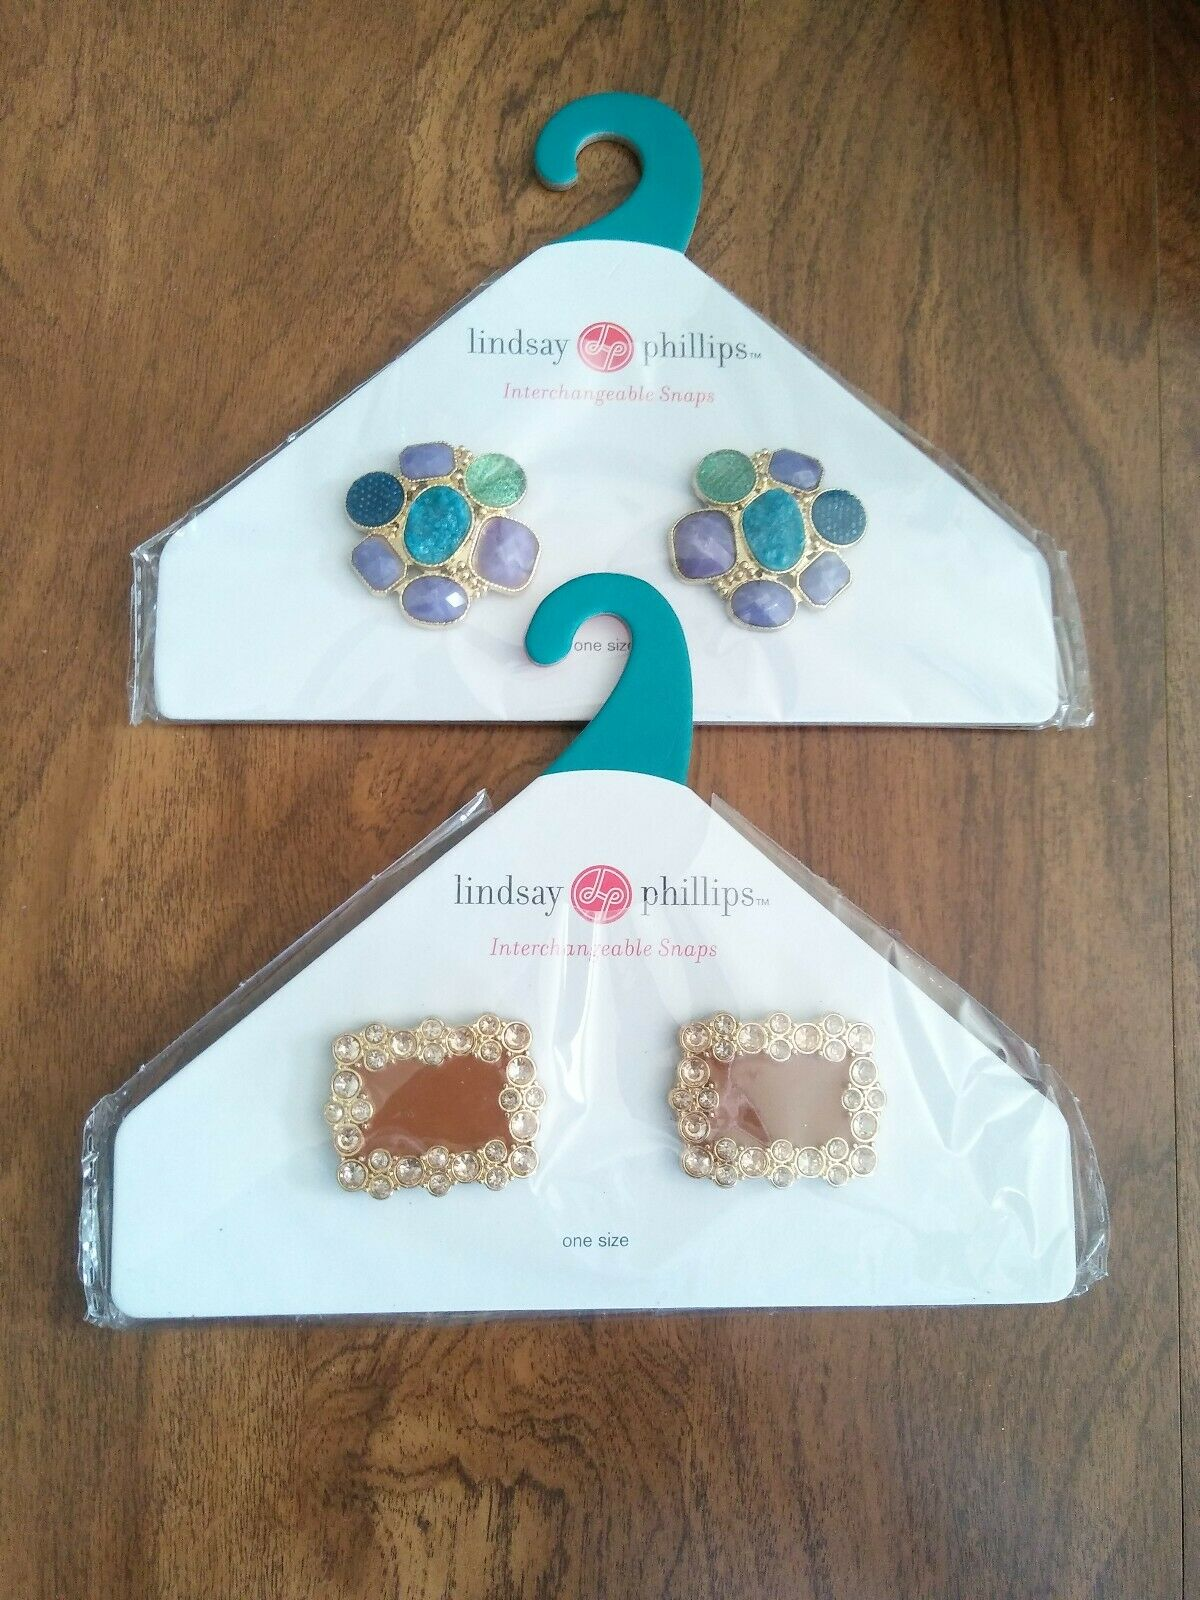 Lindsay Phillips Interchangeable Snaps • LYDIA • SEURAT • 2 Pair Lot - One Size